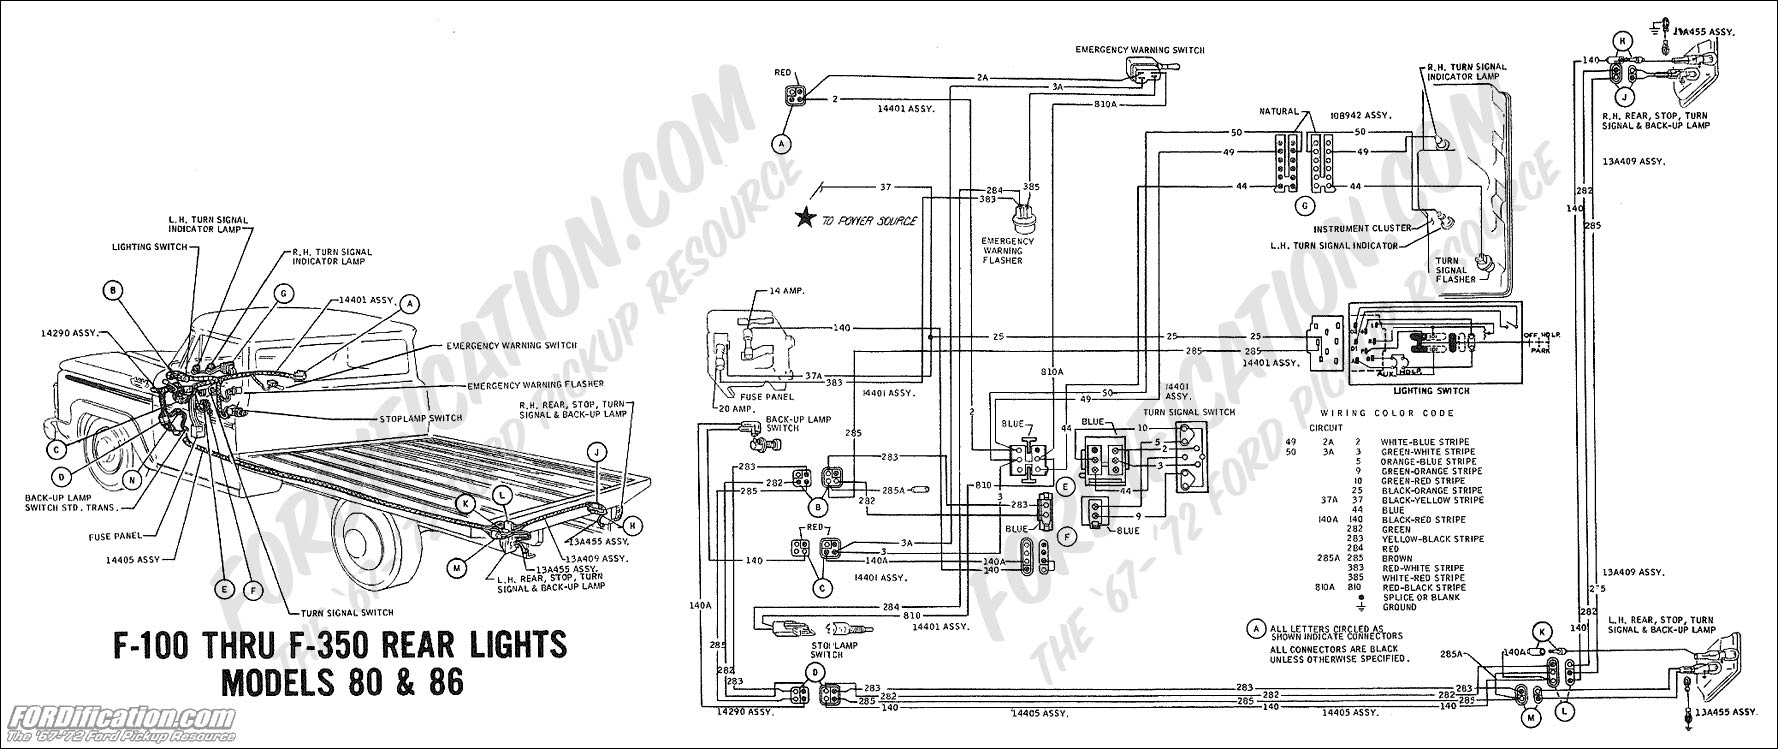 1984 f150 dual tanks wiring diagram